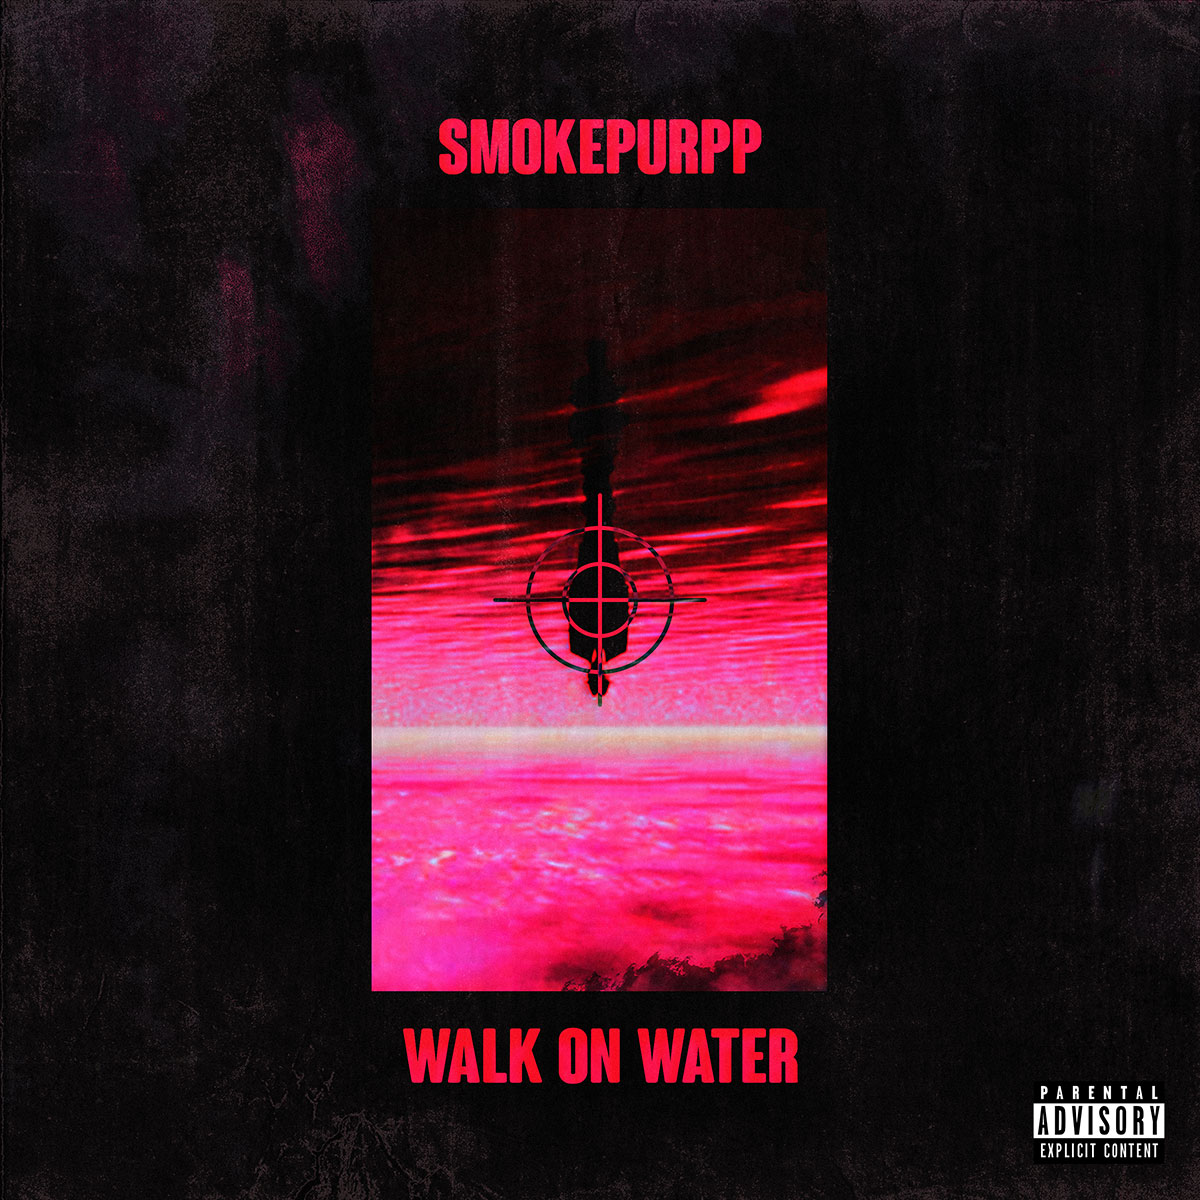 Smokepurpp Can Do No Wrong On His Latest Banger